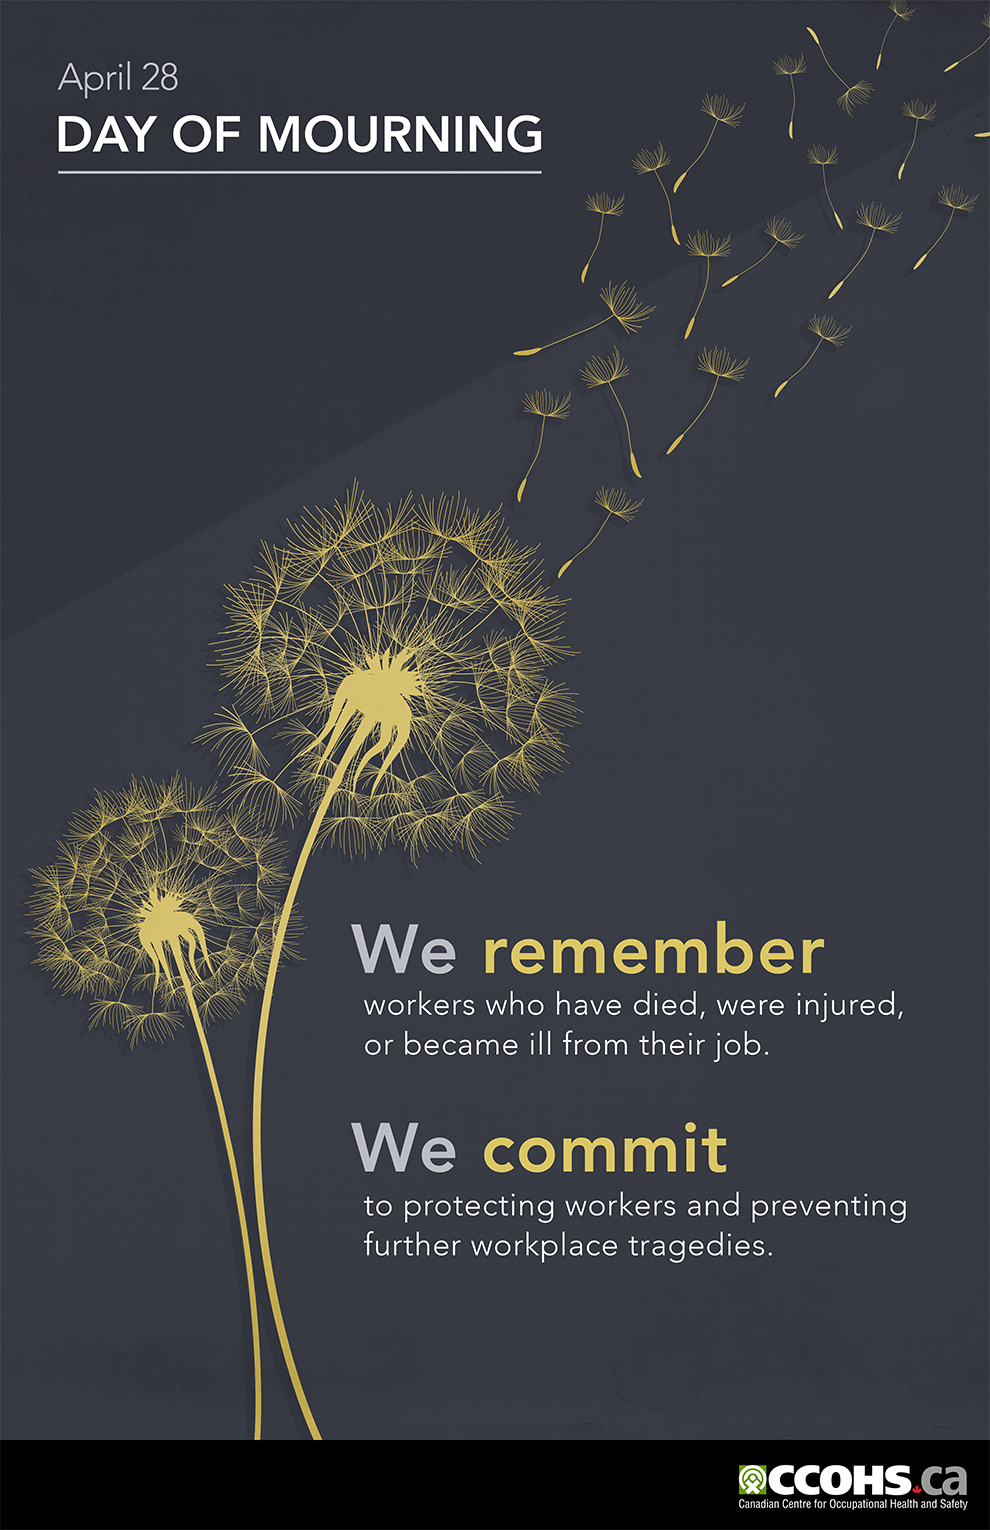 image honouring the day of mourning